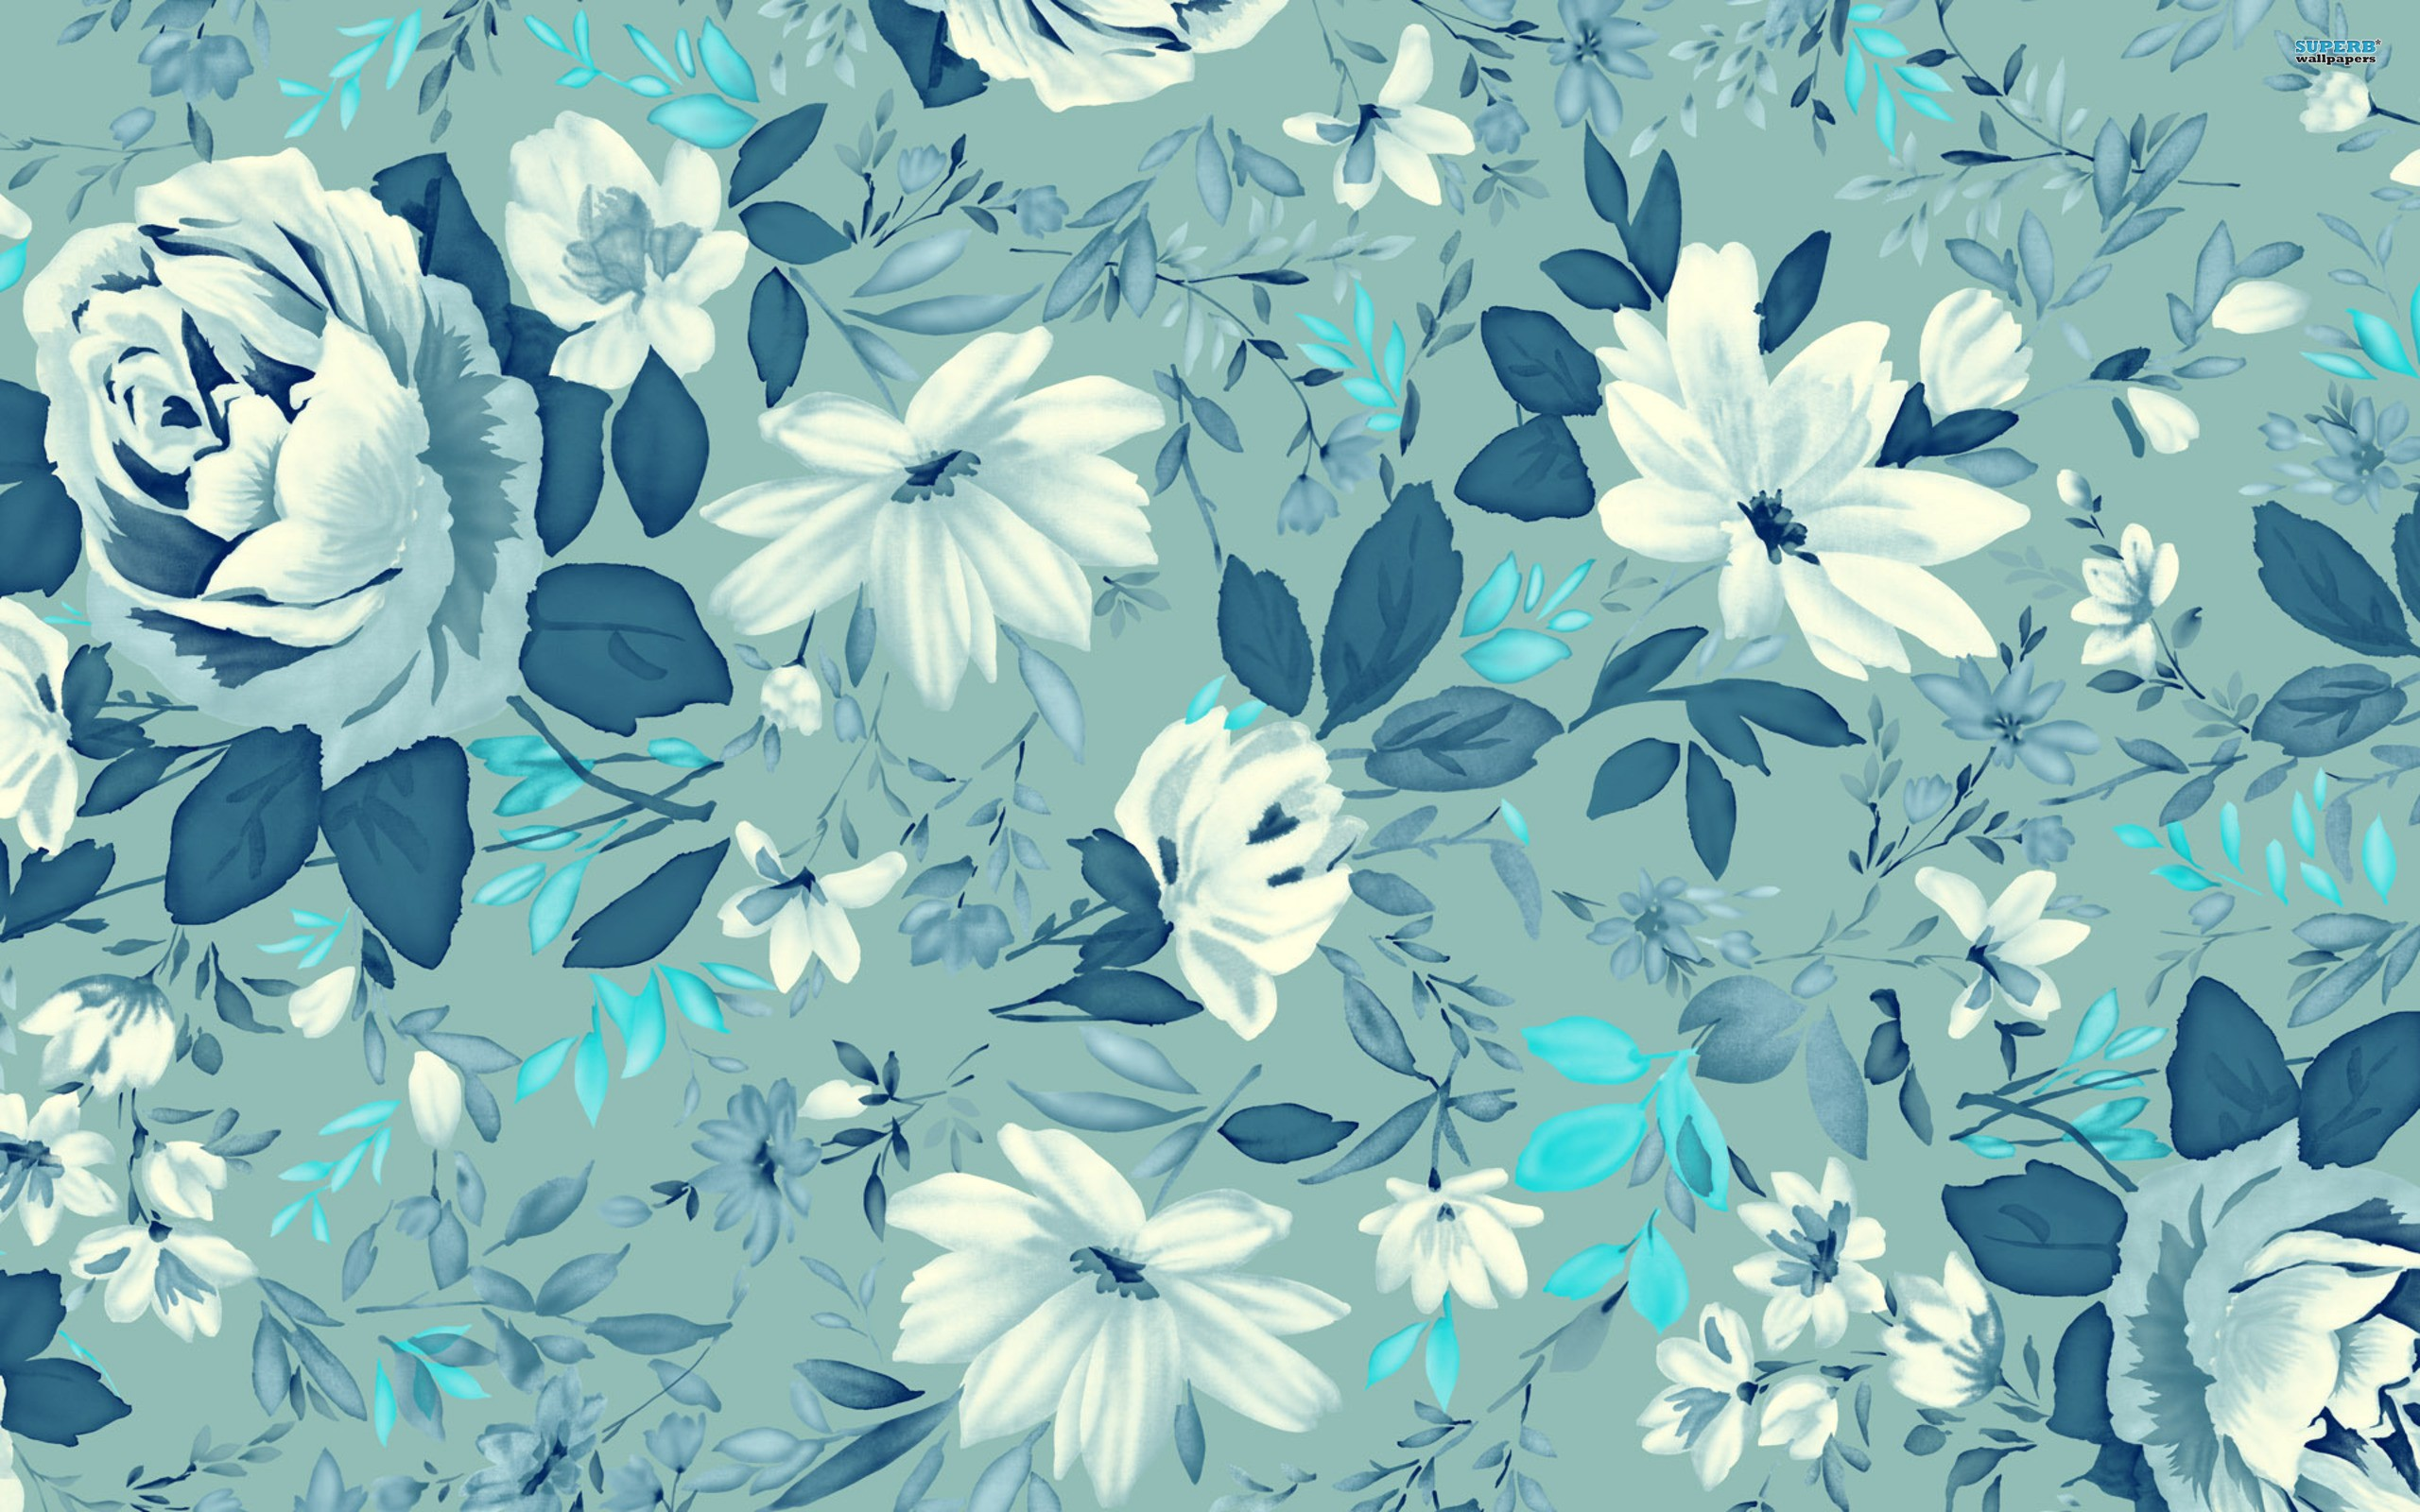 Floral Wallpaper ·① Download Free HD Backgrounds For